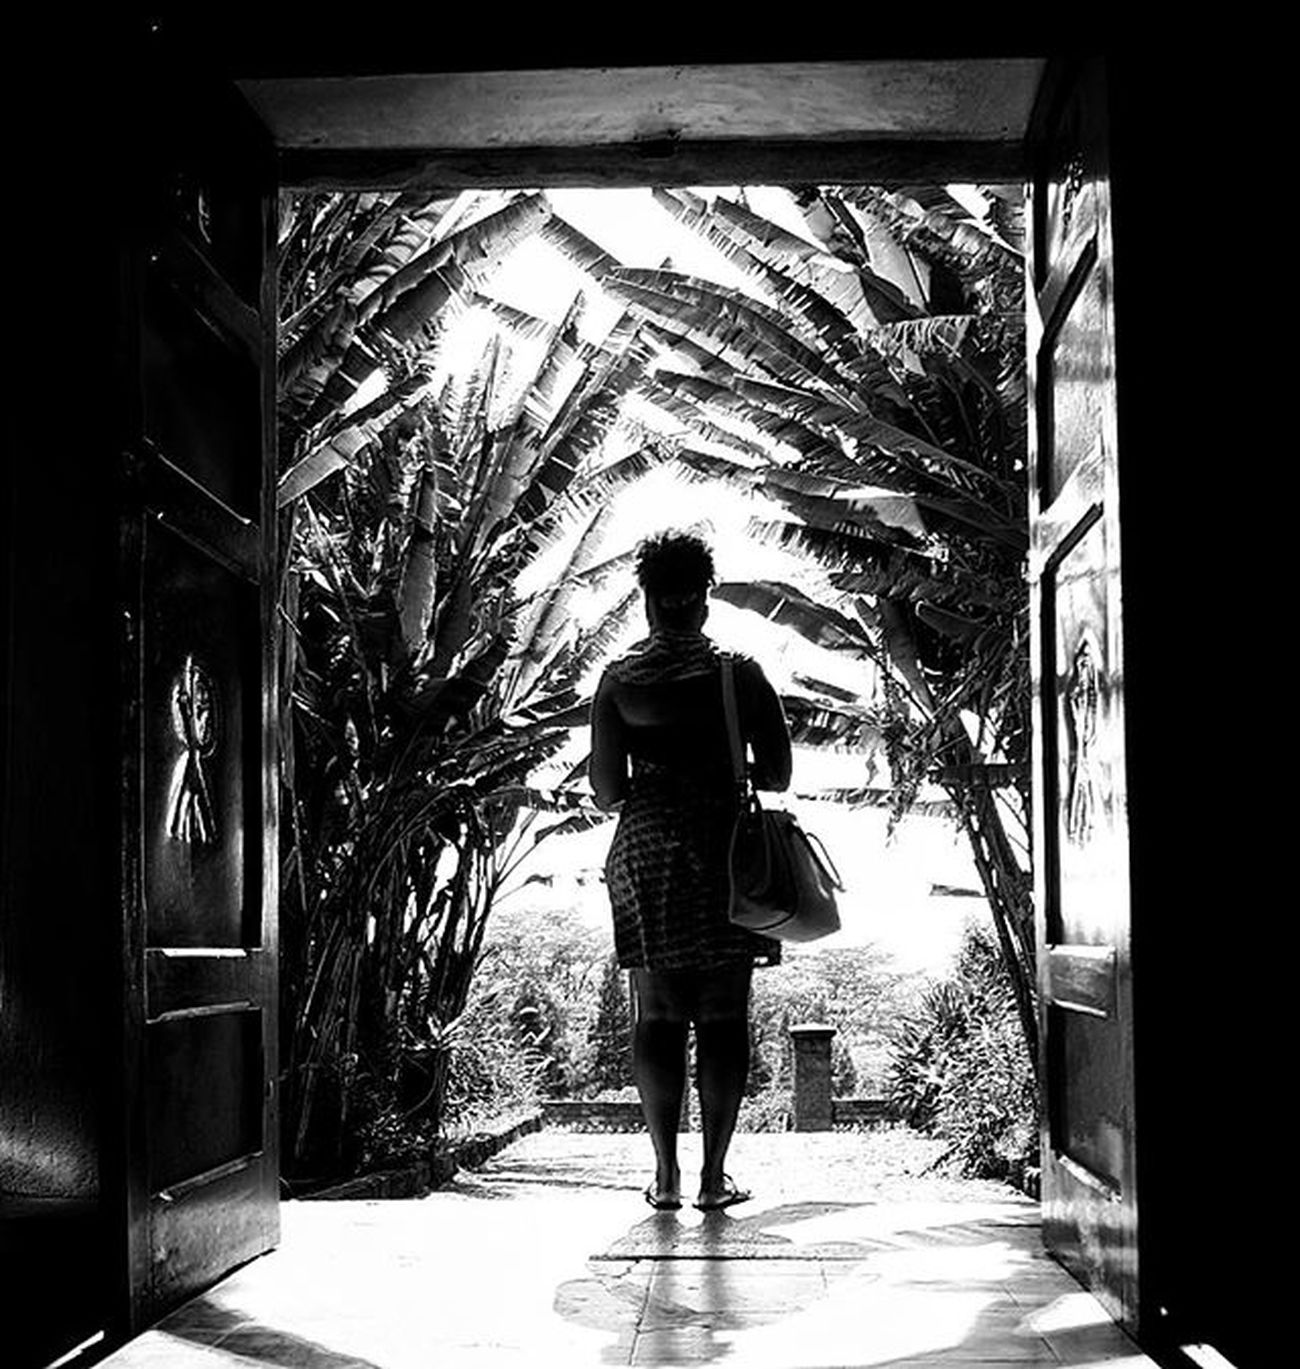 The girl indoors _ 365photoproject 365photochallenge Day37 Vscokenya Vscocam VSCO Vscogood Igkenya Igersnairobi Kenya365 Igers Instagood Fujifilm Xt1 Monochrome Blackandwhite Photooftheday Picoftheday Doors Architecture Travel Design Light Beautiful Sun palmtree paradise view nairobi kenya